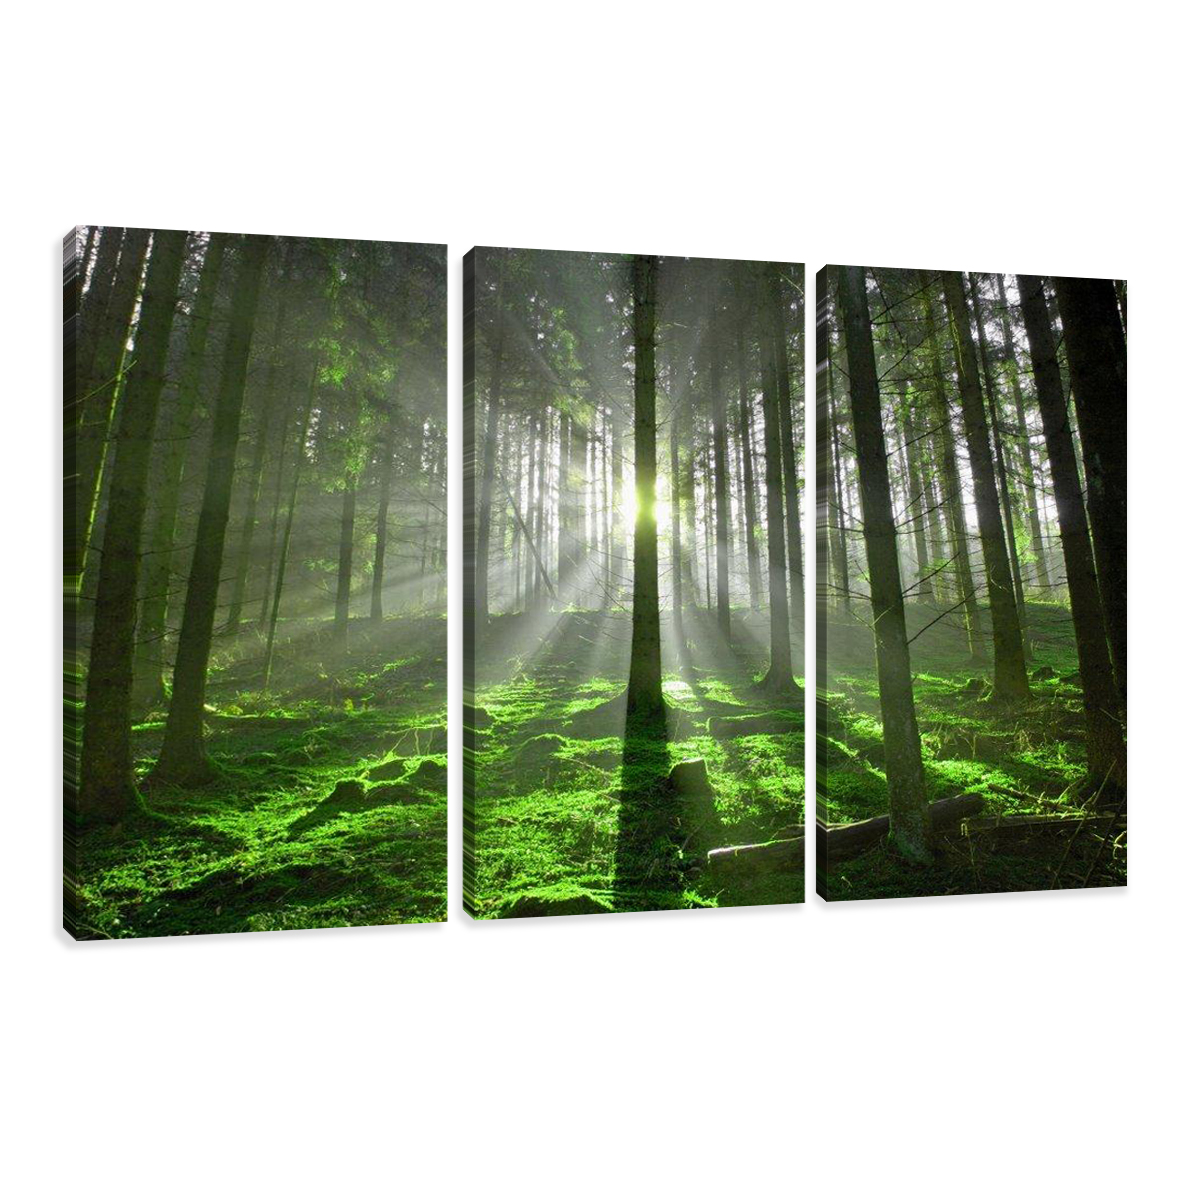 leinwand wandbilder bild wald licht b ume verschiedene gr en kunstdruck 1513 c1 ebay. Black Bedroom Furniture Sets. Home Design Ideas